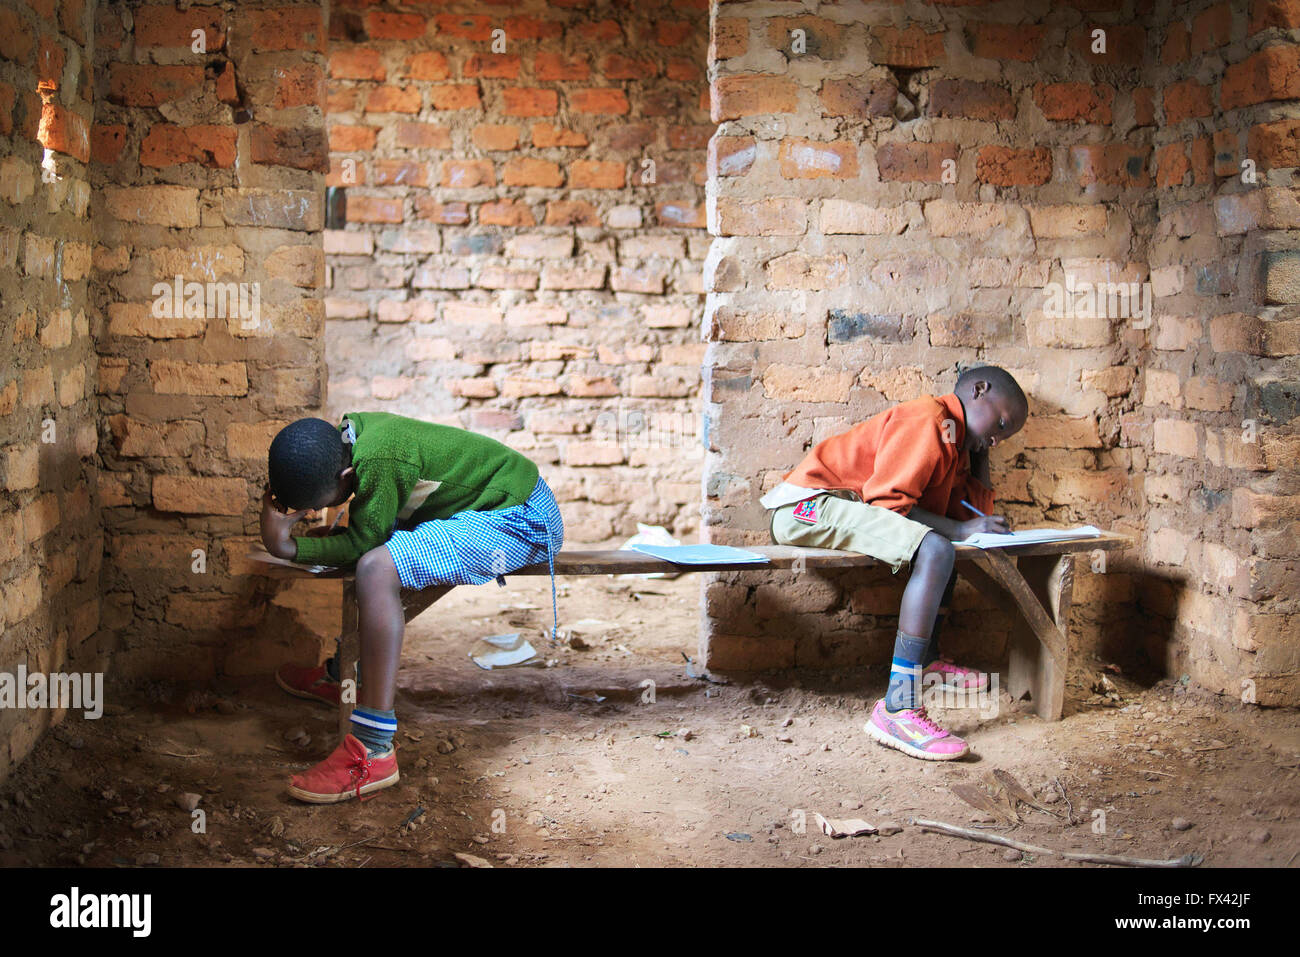 Two brightly dressed school children take exams in a rural school in Uganda, East Africa - Stock Image